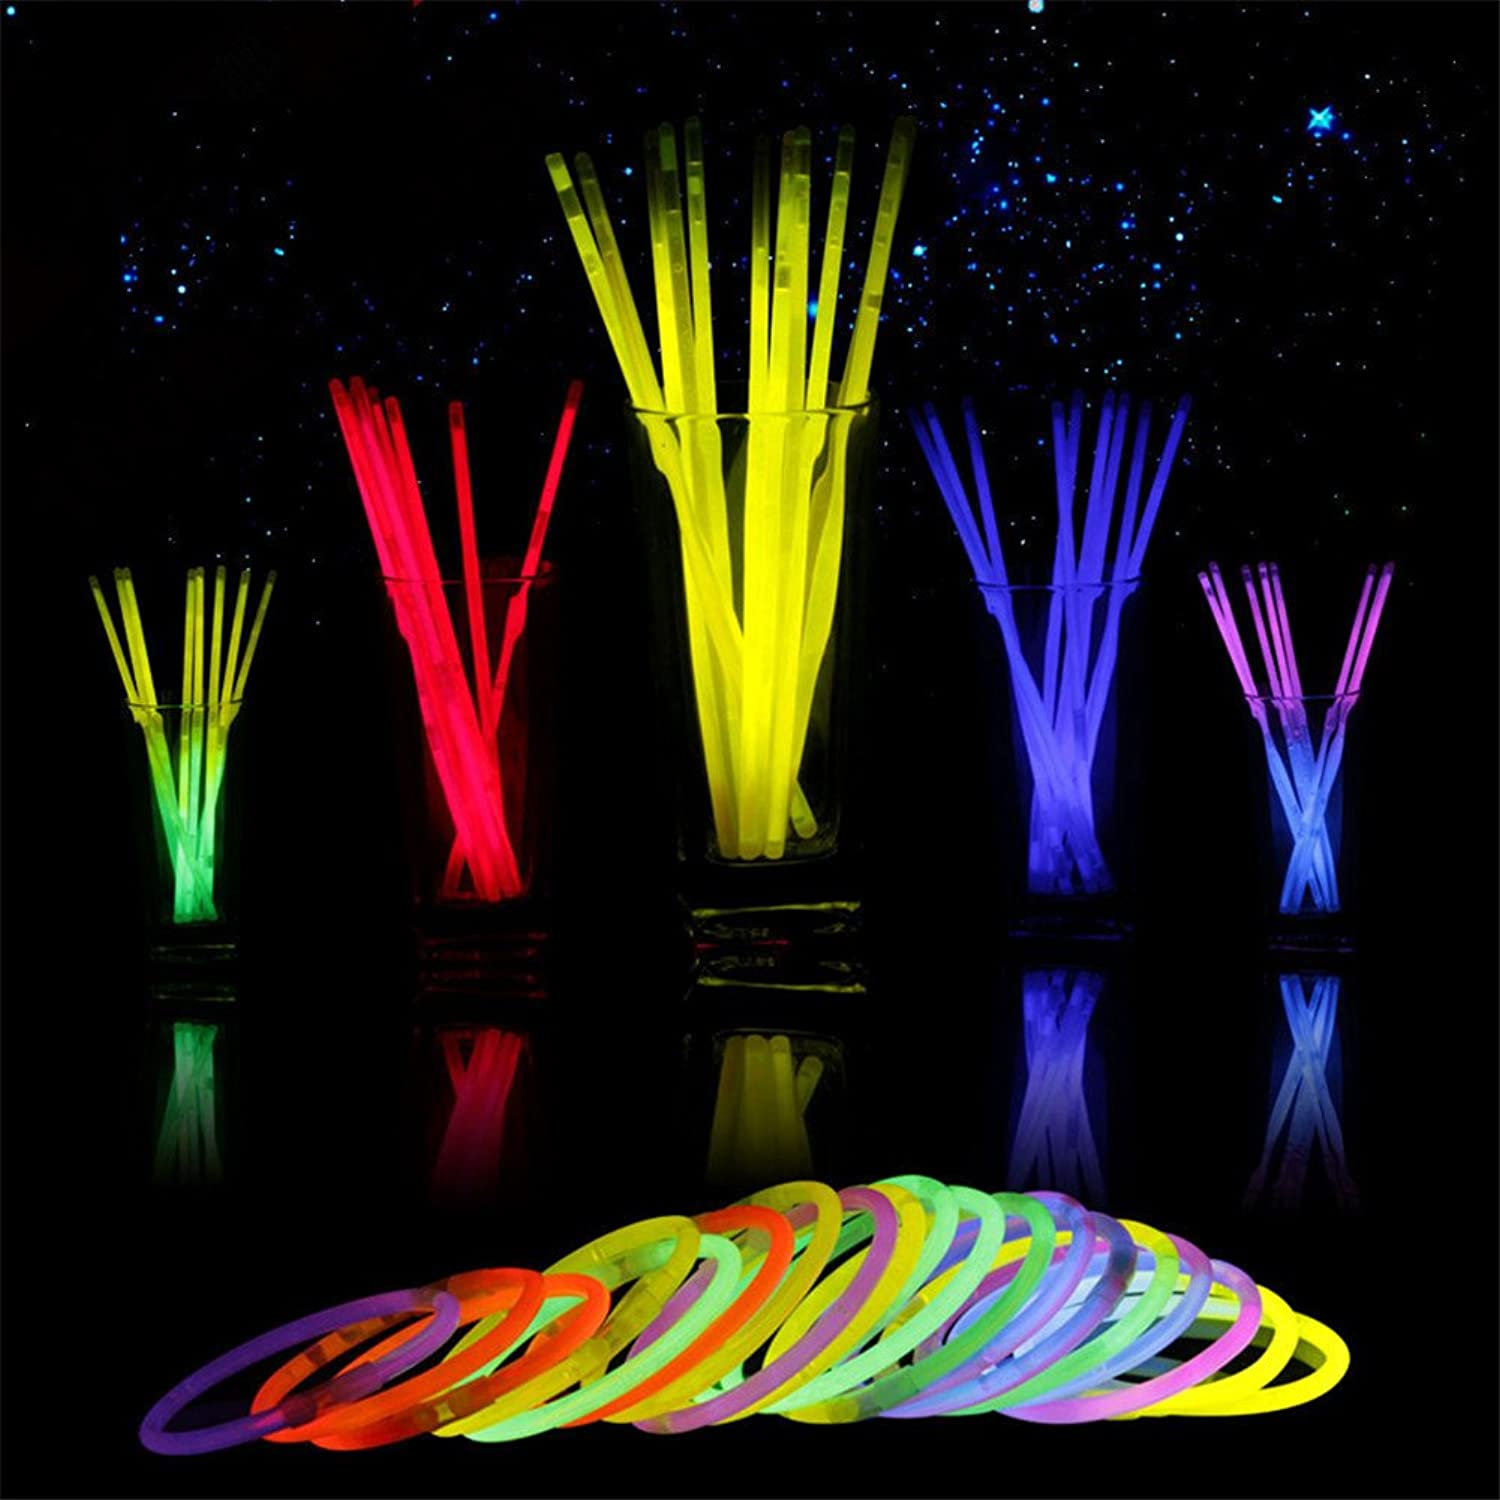 GFEU Glowsticks In Bulk 1000 Packs, Premium Light Up Toys Glow Stick Bracelets for Adult Kids Halloween XMas Party Favors Supplies, Mixed colors